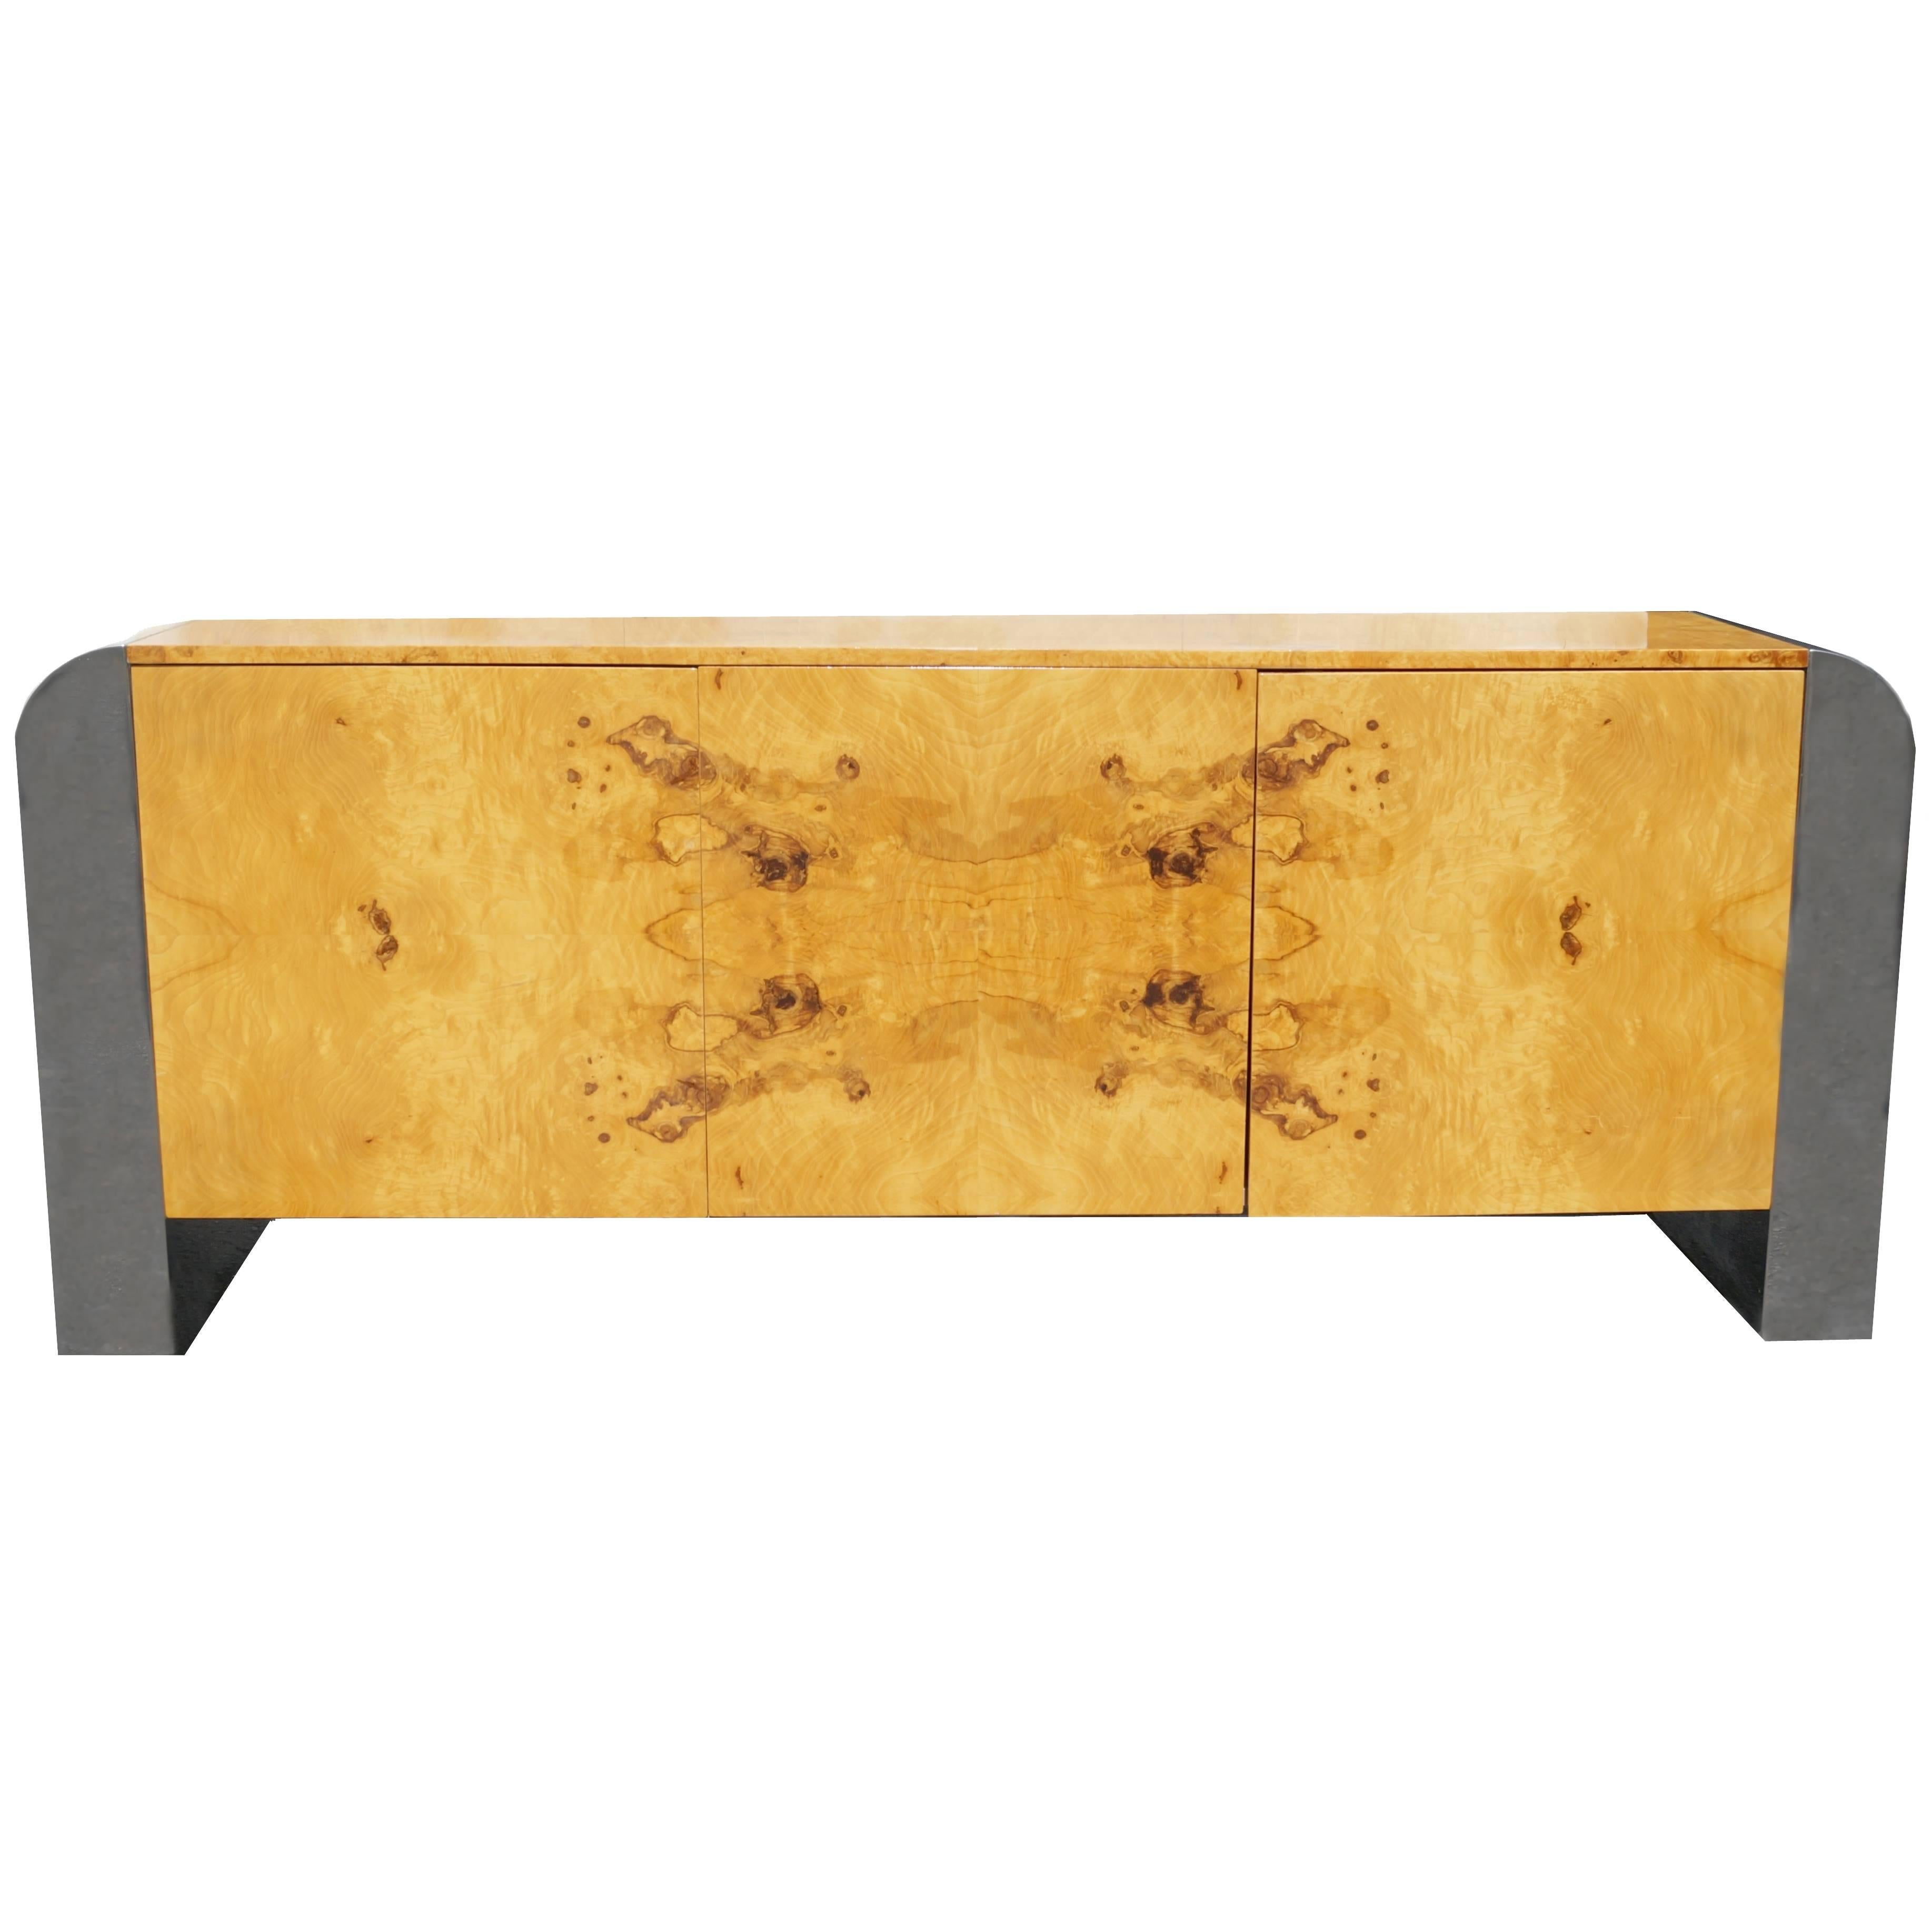 Pace Collection Burl Wood Credenza or Sideboard Steel Waterfall